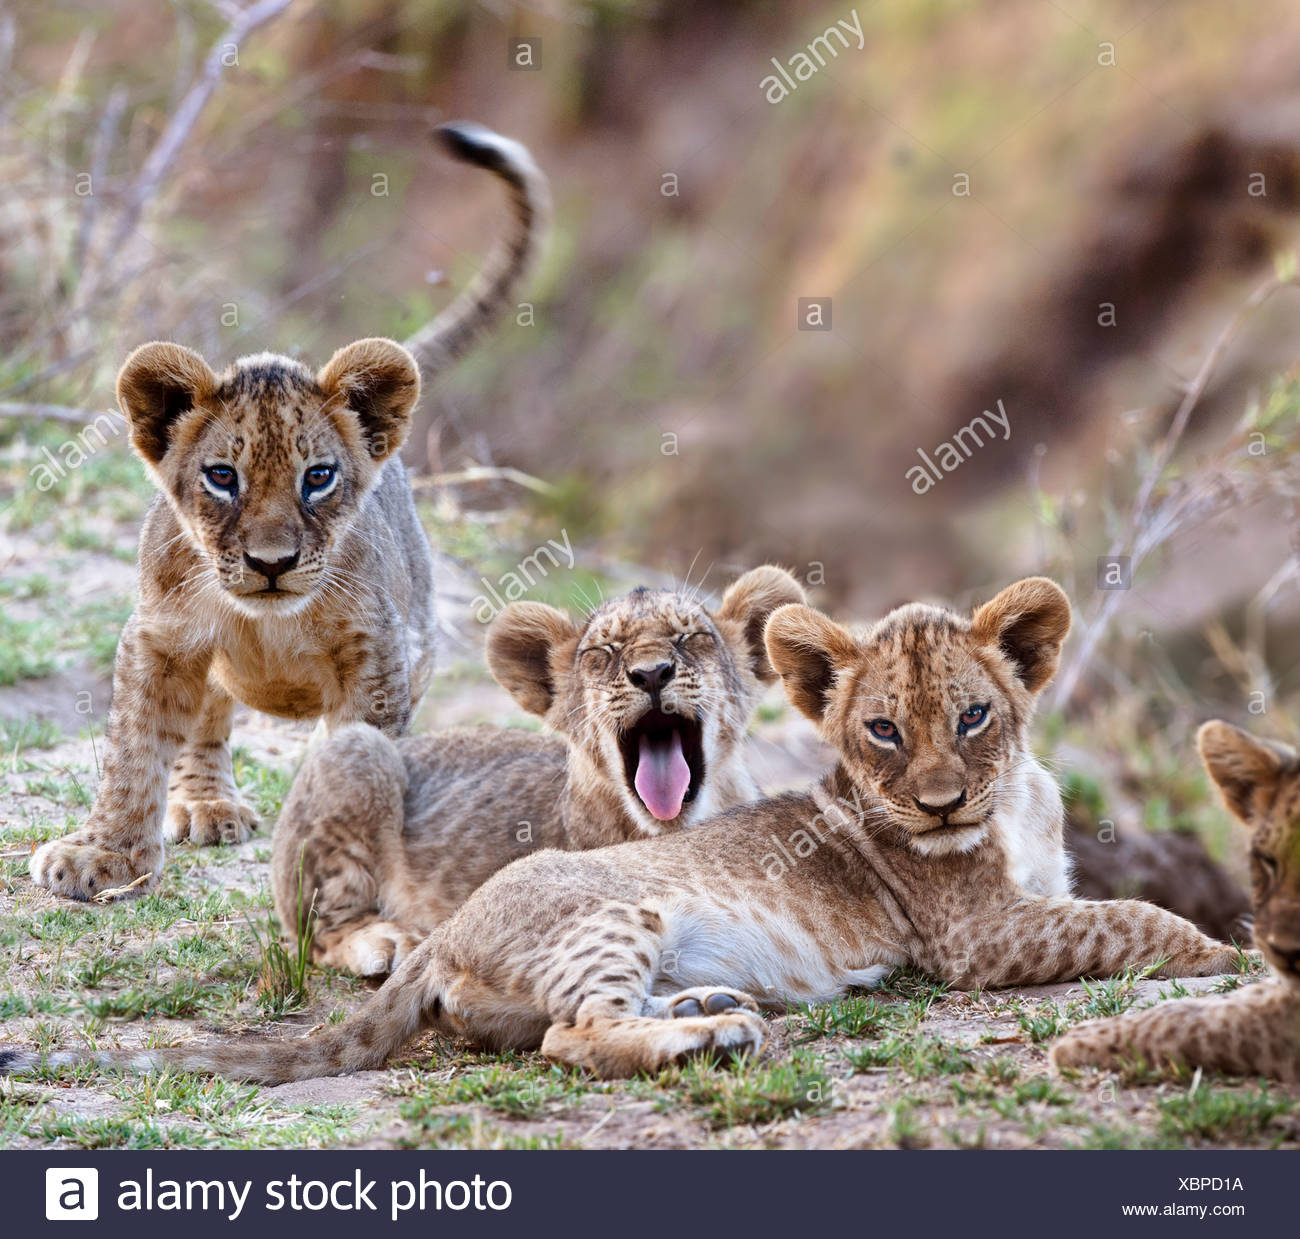 African Lion cubs  - approx 3 months old - near the Luangwa River. South Luangwa National Park, Zambia - Stock Image